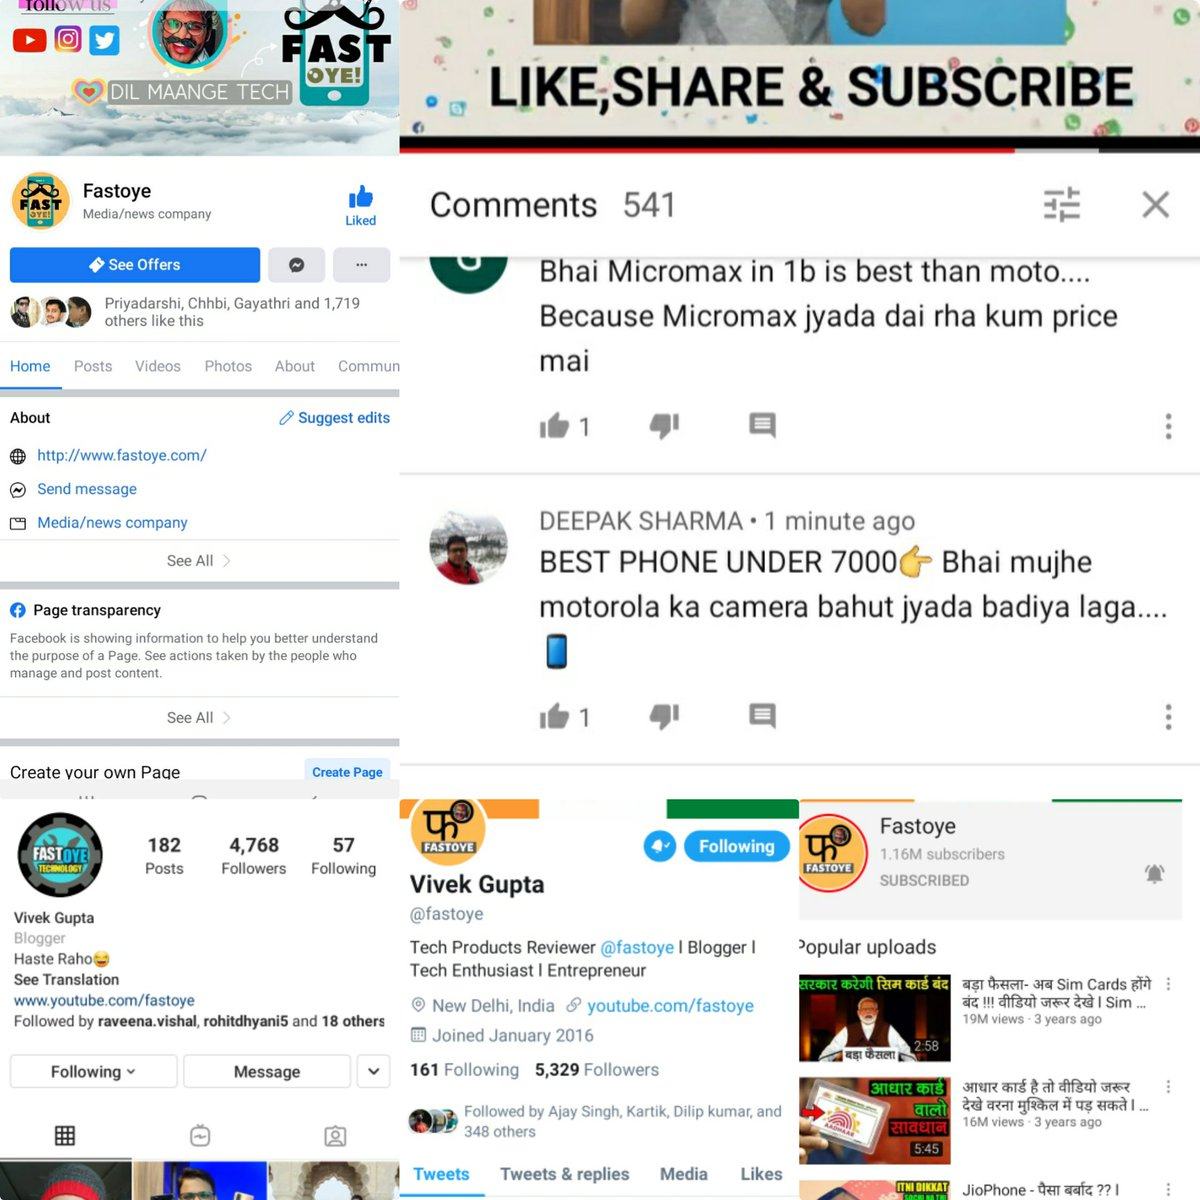 @fastoye Done all step bhai♥️🥰 Followed on All platforms🙏✅  #GiveAway  @fastoye  #fastoye #fastoyefamily  #Giveaways #Trending   Join @KaradNitin525 @goraiya_ashwin @sameerghazi11 @deepaksaxena88 @SajalMo12732675 @PratikSingh_ @Always_Happie @Asif84811516